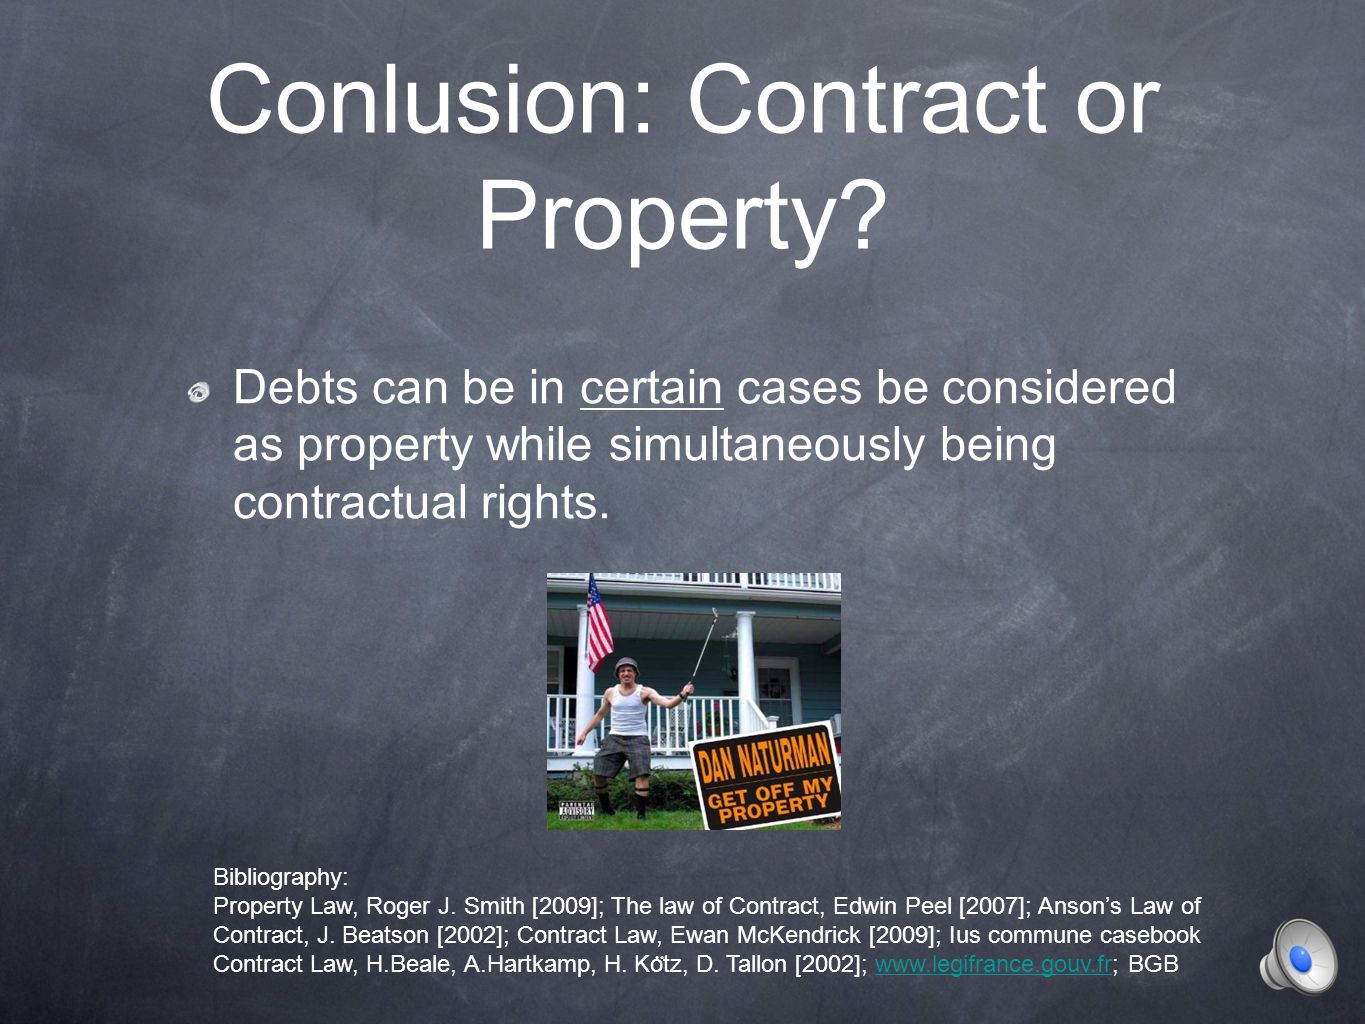 Conlusion: Contract or Property? Debts can be in certain cases be considered as property while simultaneously being contractual rights. Bibliography: